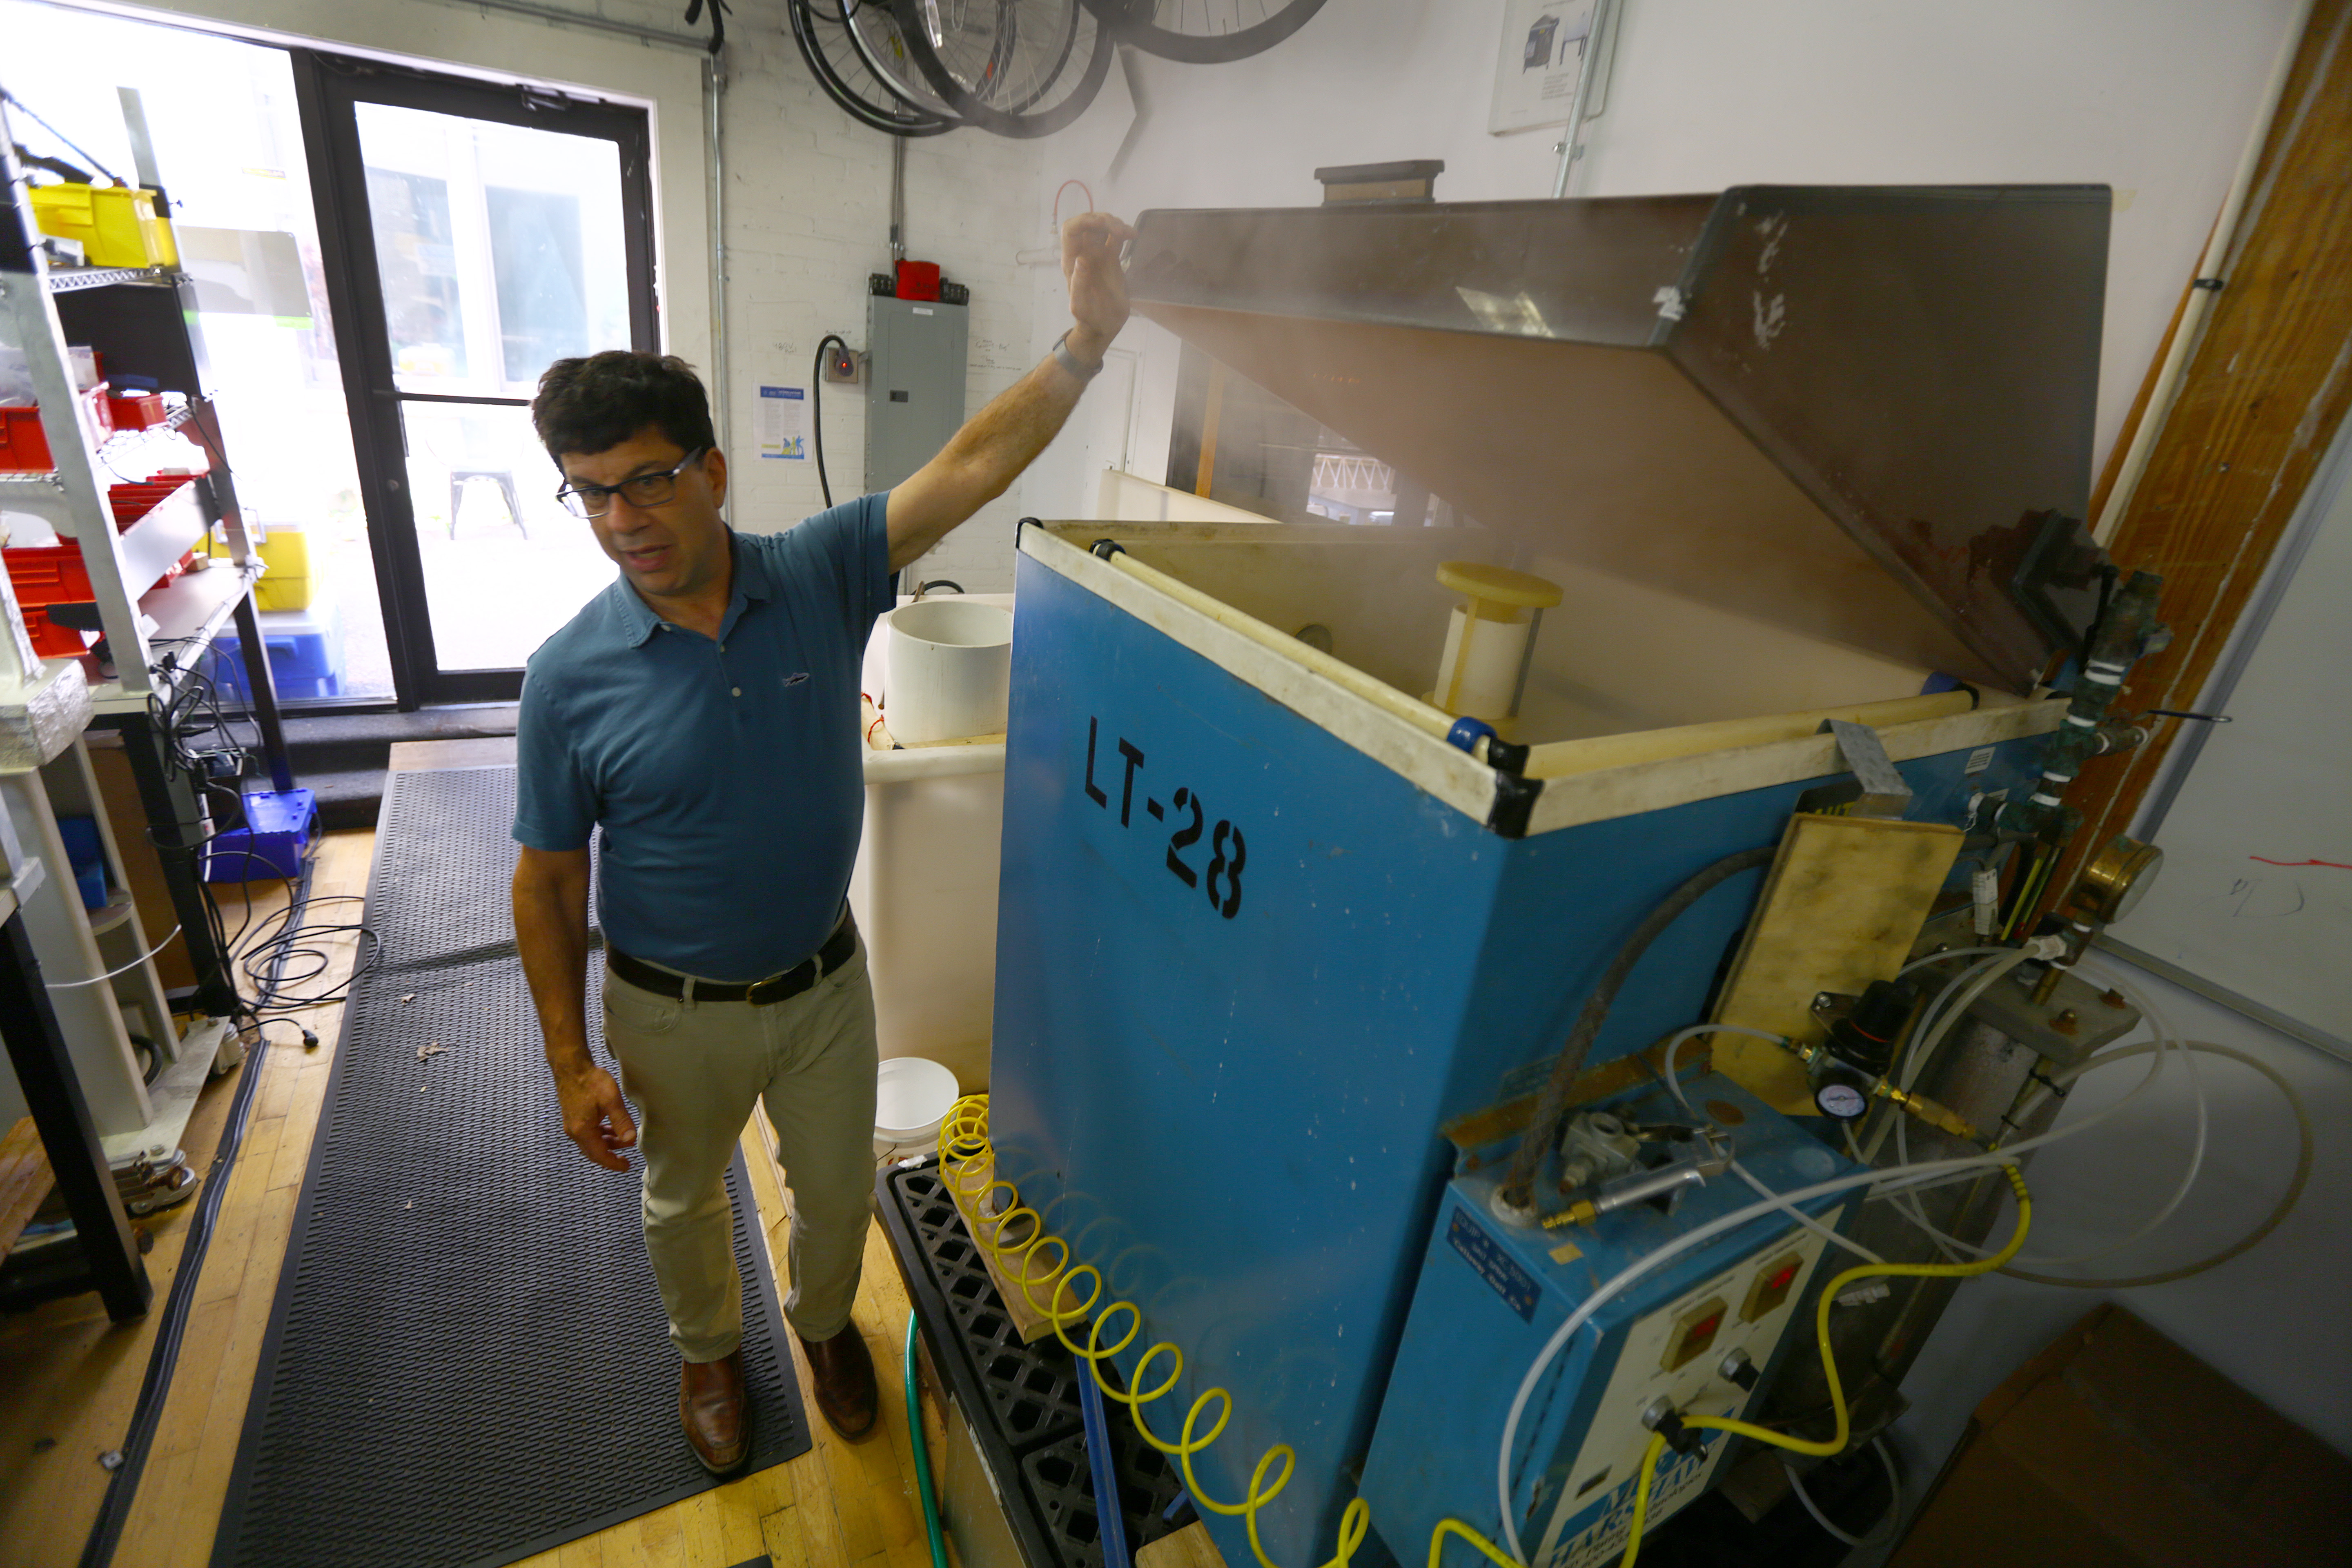 David Michael, director of mechanical engineering at Superpedestrian, stood next to a salt fog machine, which conducts accelerated salt corrosion tests.